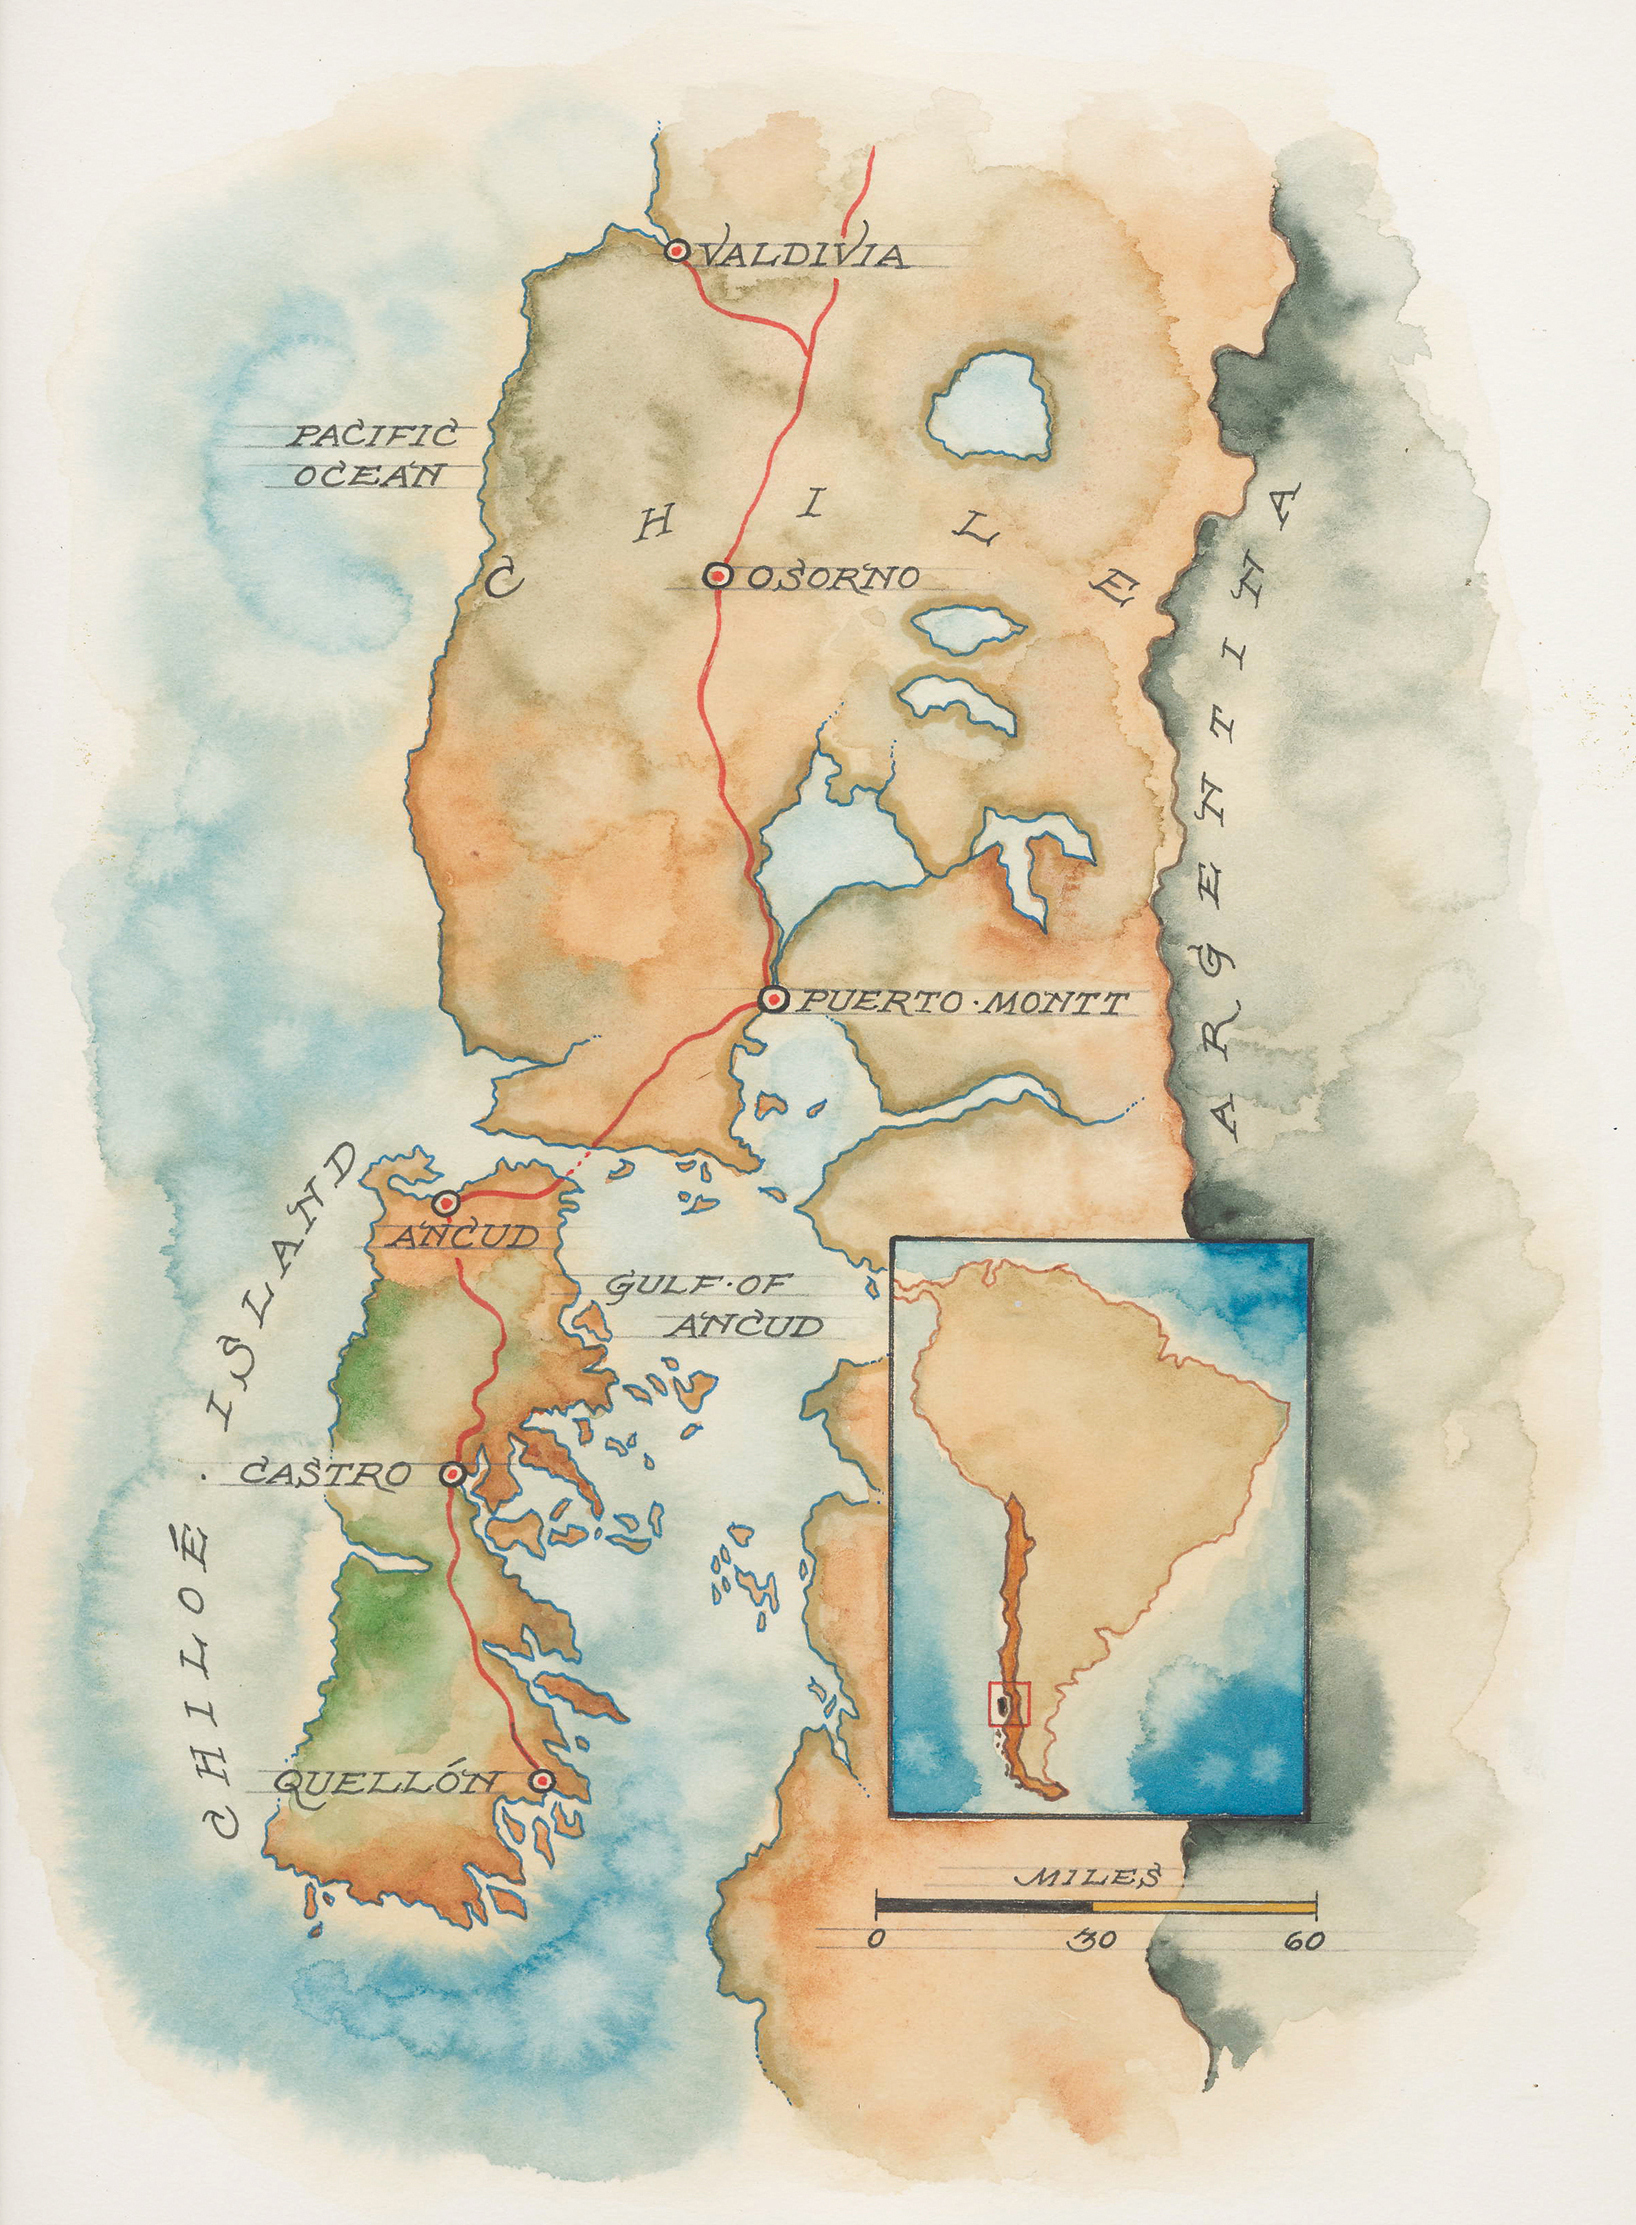 Map of Chile and Chiloé Island: Mike Reagan